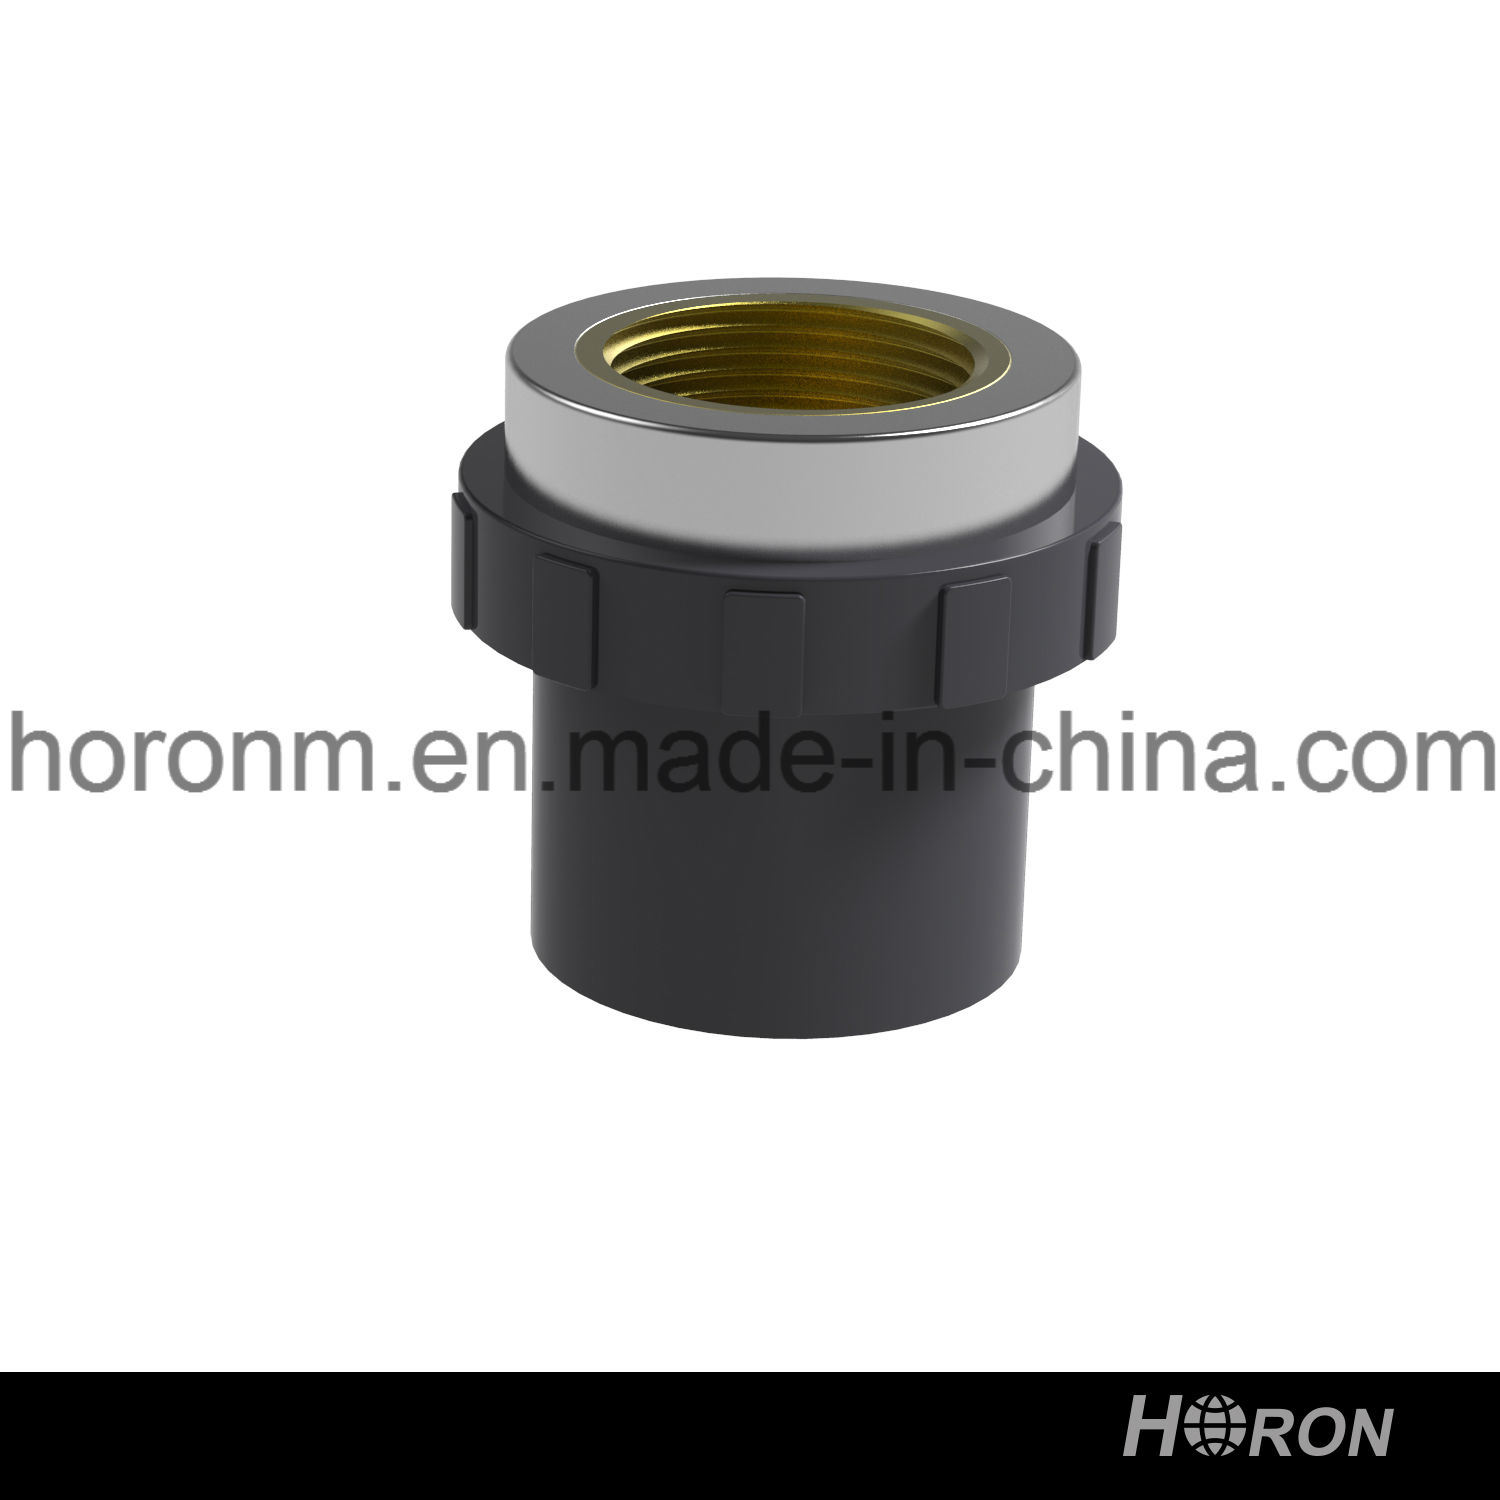 Water Pipe-UPVC Pipe Fitting-UPVC Famale Thread Coupling-PVC Sch80 Coupling